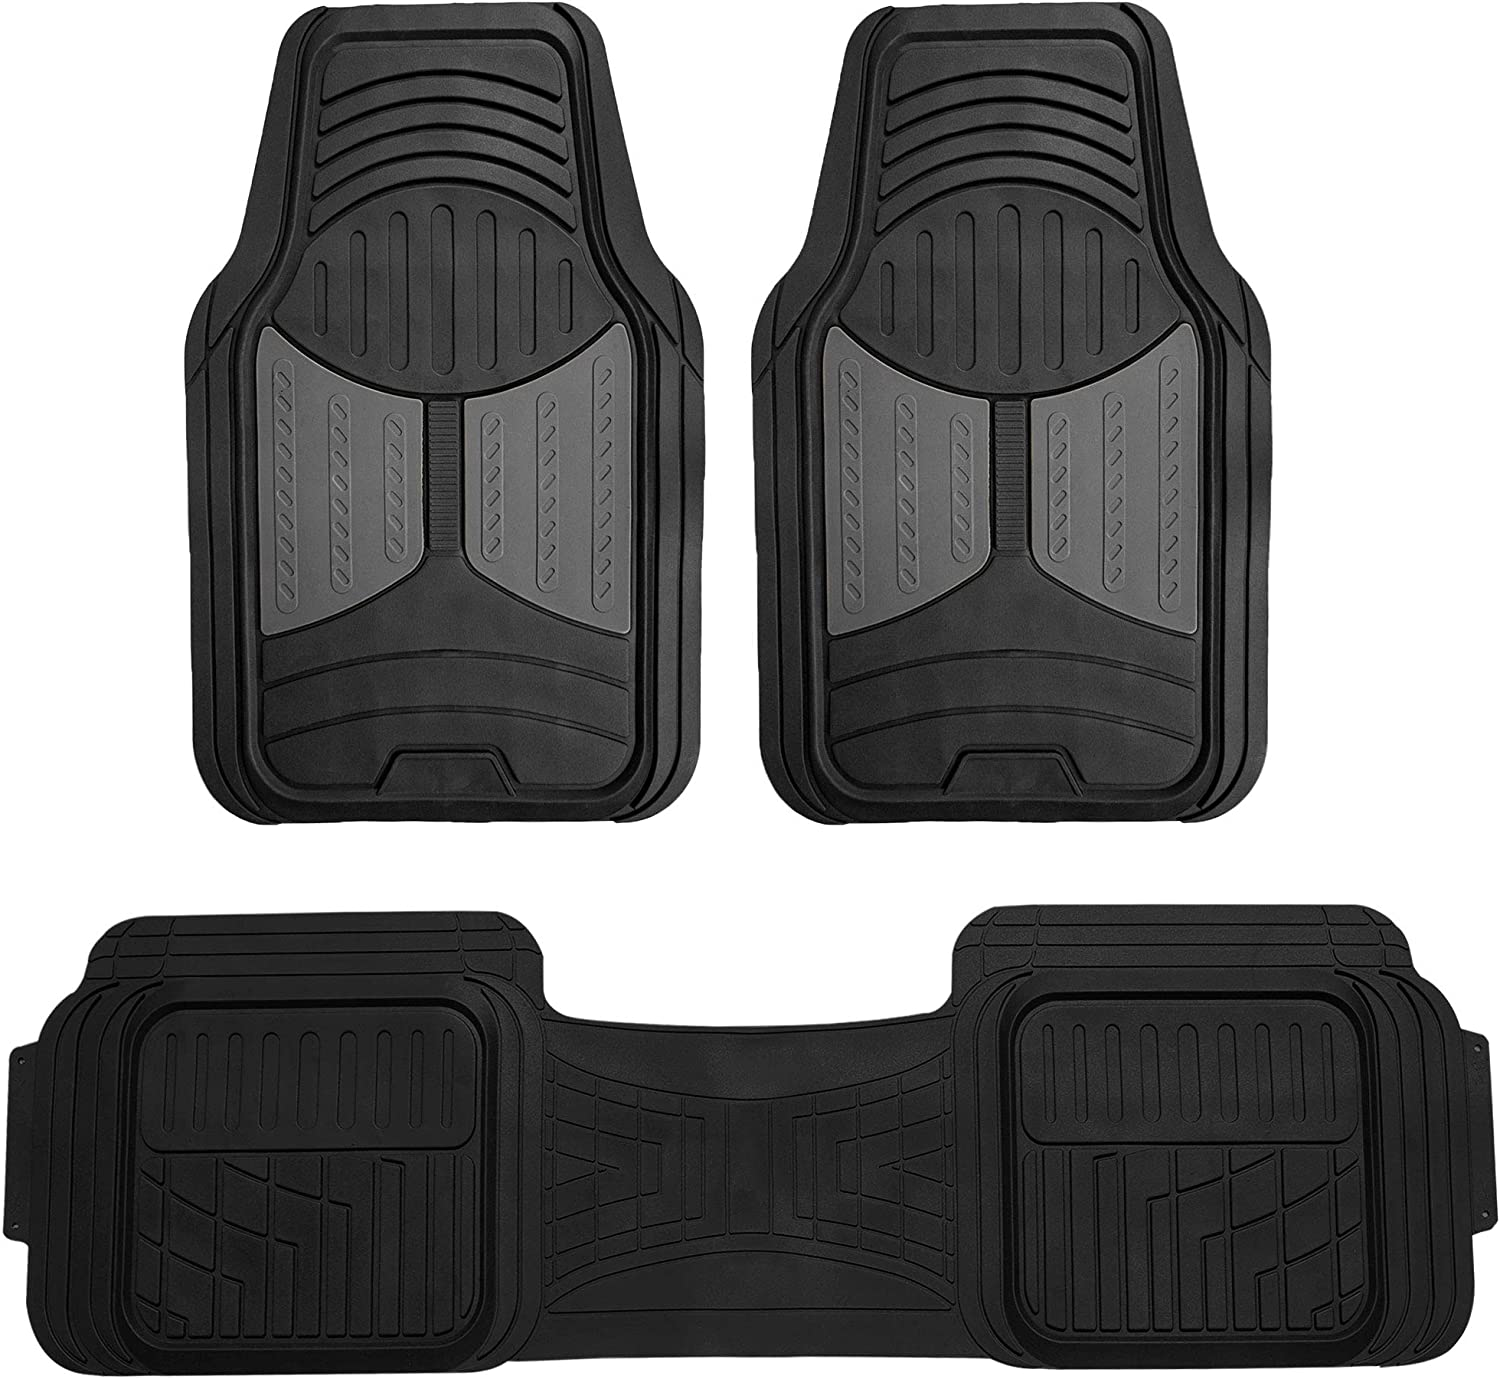 FH Group F11513 Trimmable Heavy Duty Rubber Floor Mats (Gray) Full Set - Universal Fit for Cars Trucks and SUVs